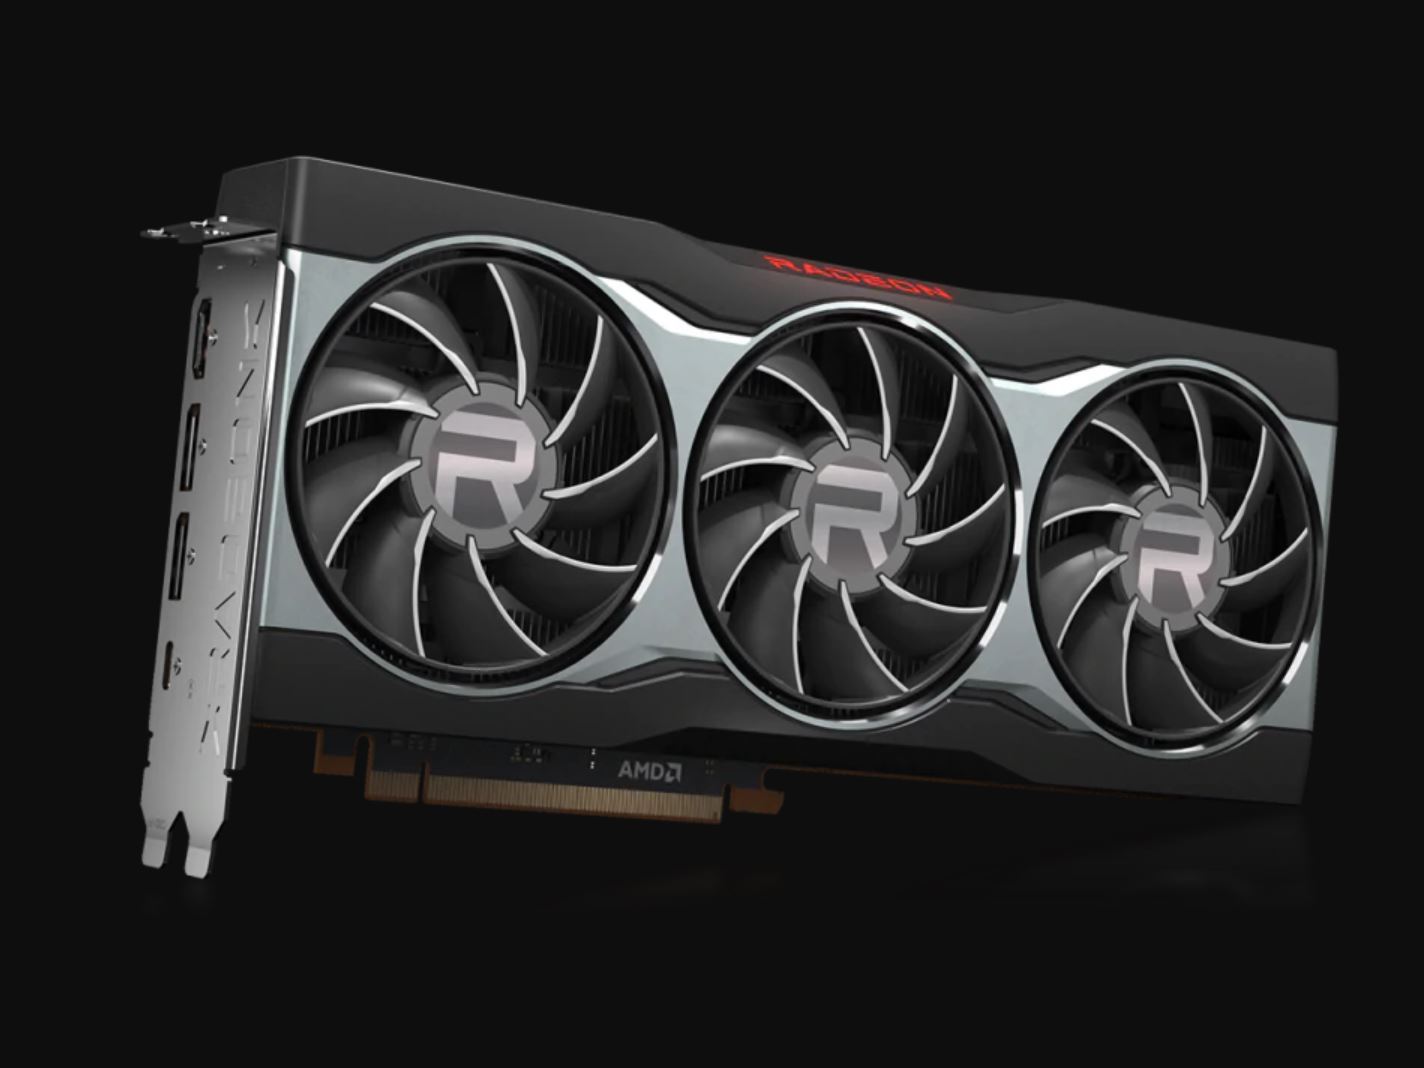 While the RX 6800 series reference cooler runs a bit louder and warmer than NVIDIA's FE cooling solution, it is a major improvement over previous AMD designs.